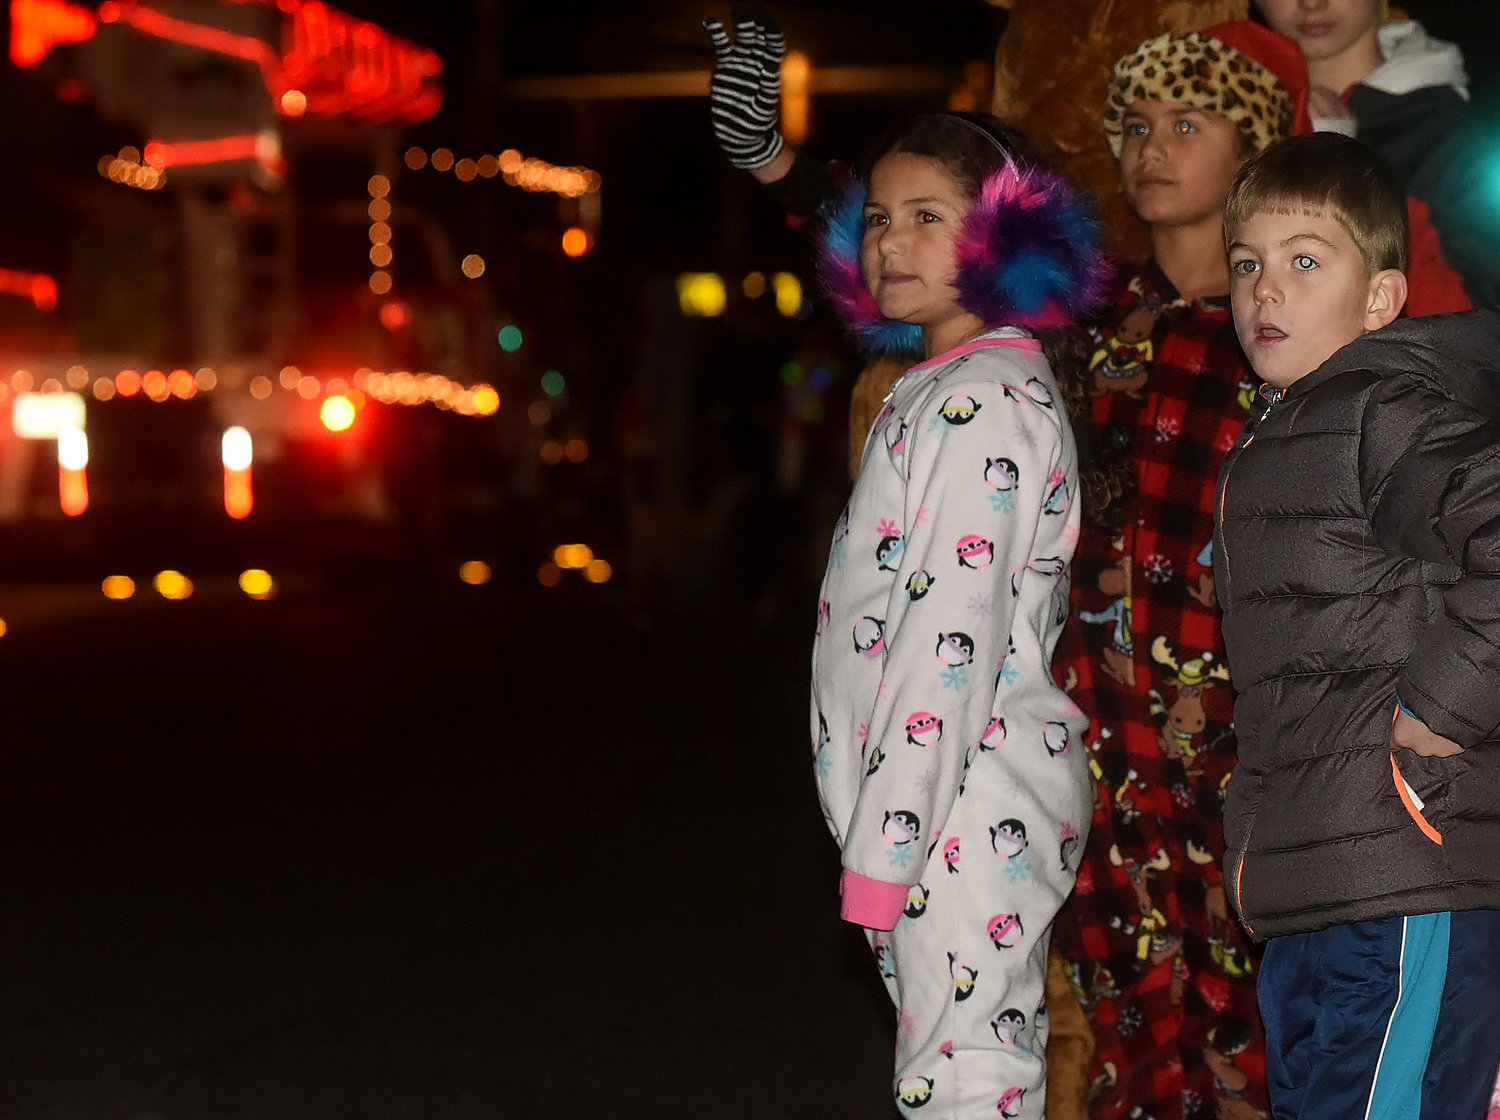 Holiday enthusiasts of all ages lined the streets of downtown Cartersville Thursday night for the city's annual Christmas parade.